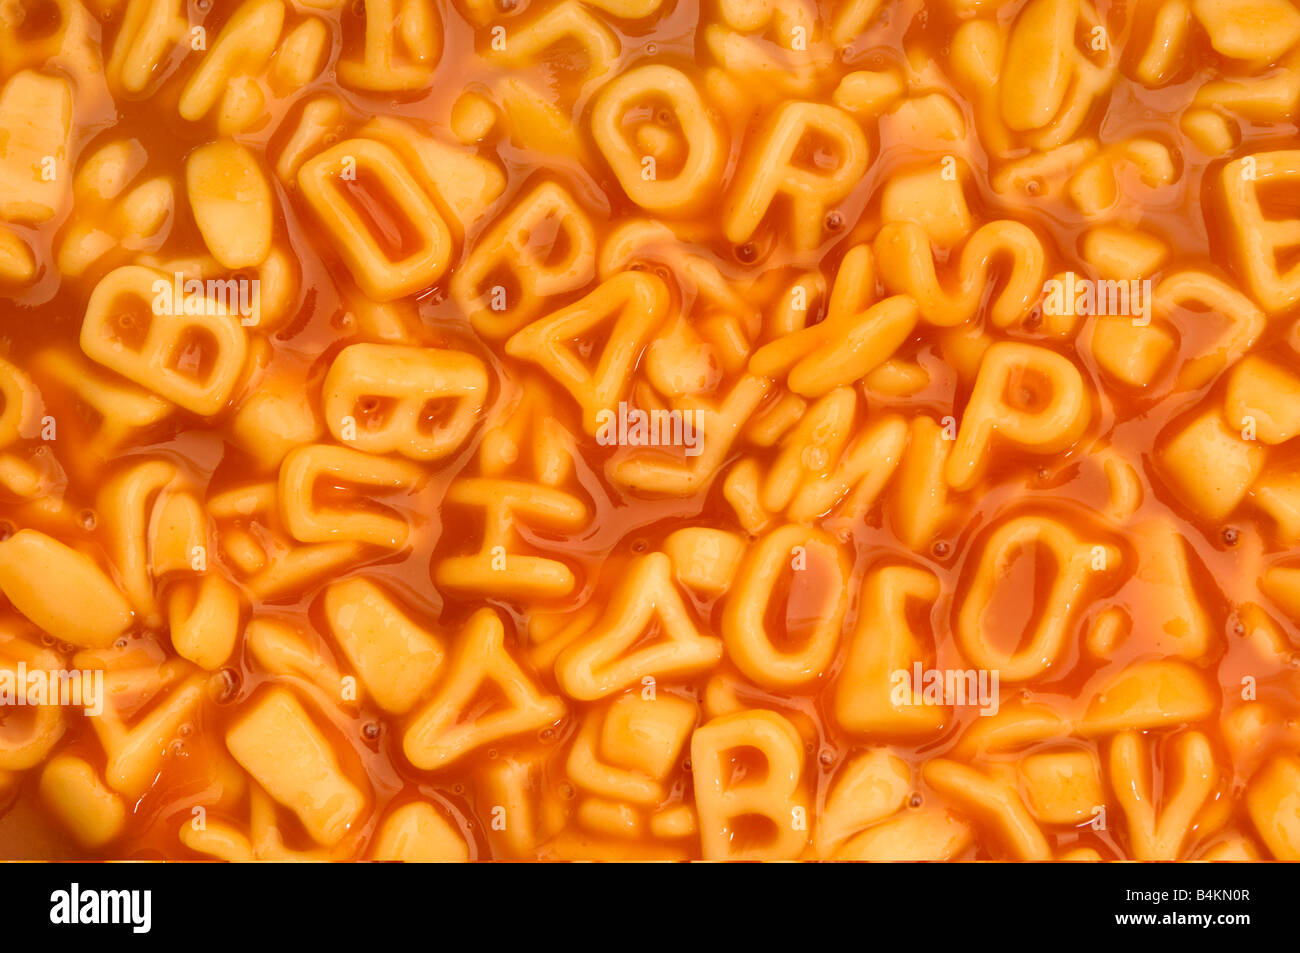 Un contexte de spaghetti alphabet Photo Stock